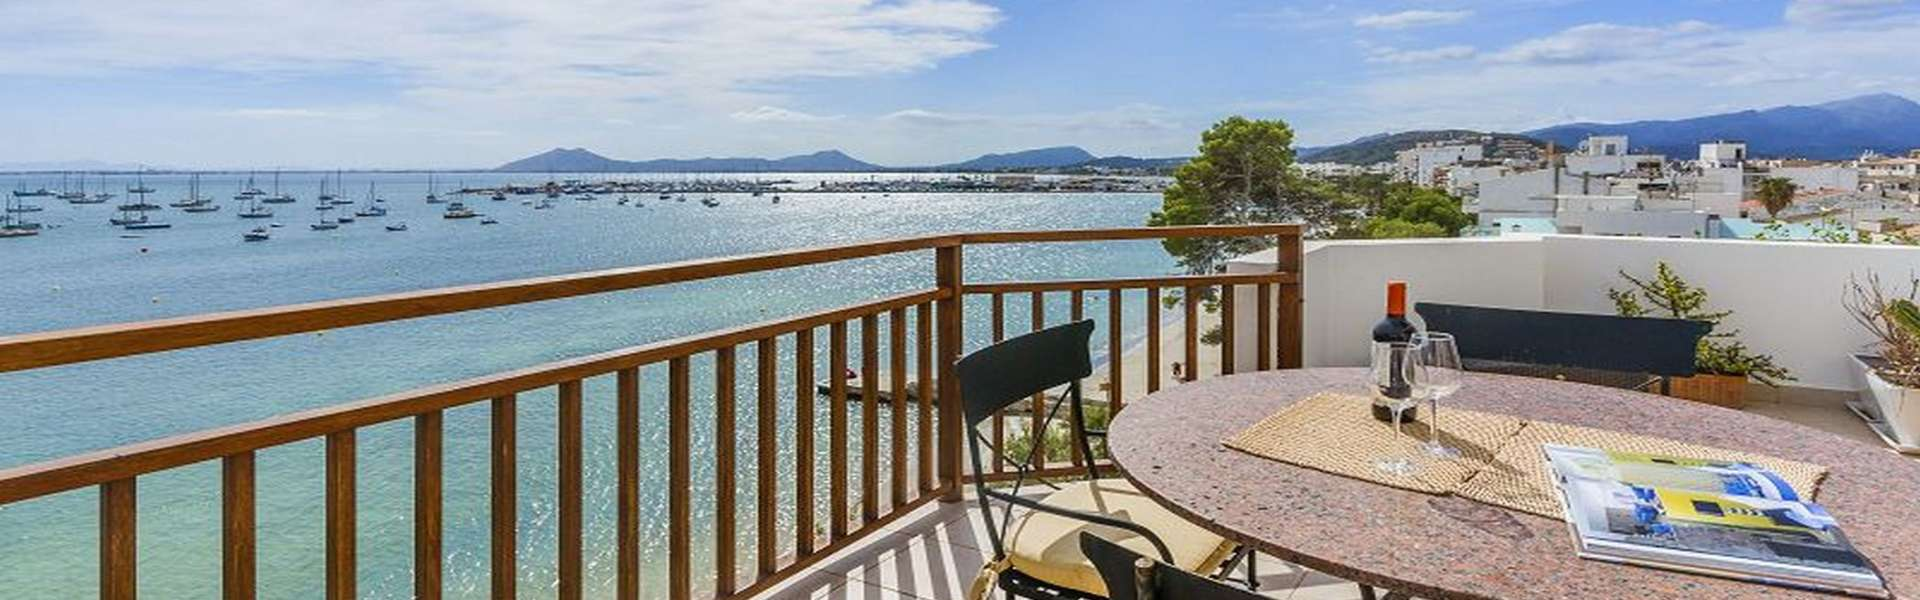 Puerto Pollensa - Luxury penthouse in first line